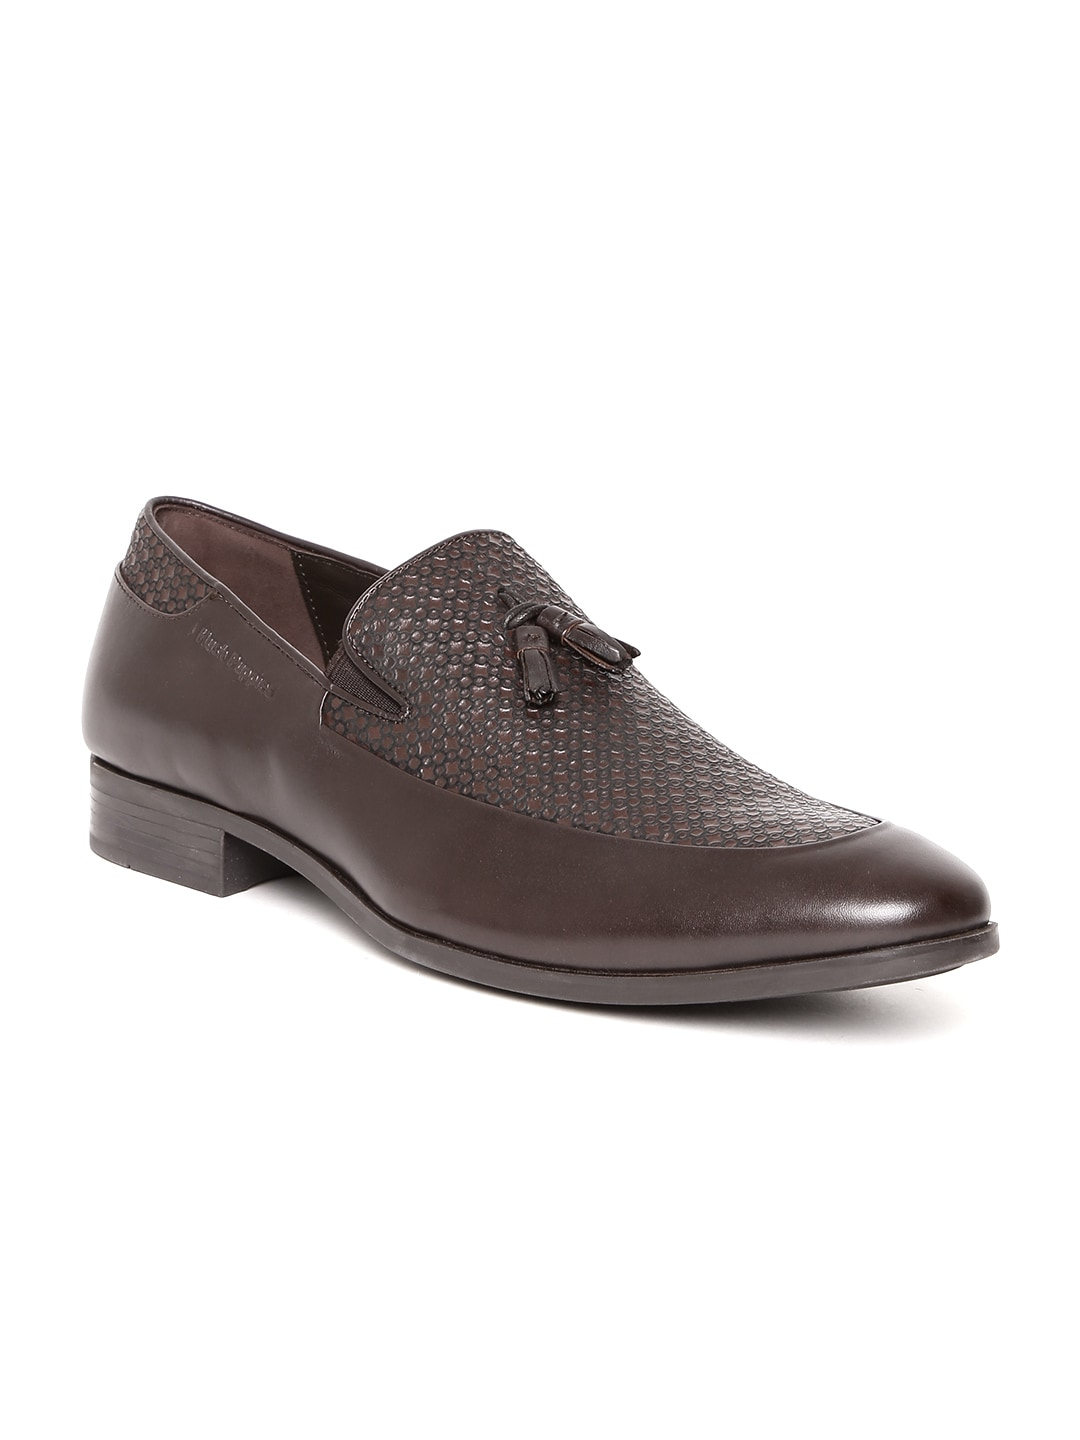 fe69e7d49d4 Hush Puppies Formal Shoes - Buy Hush Puppies Formal Shoes Online in India